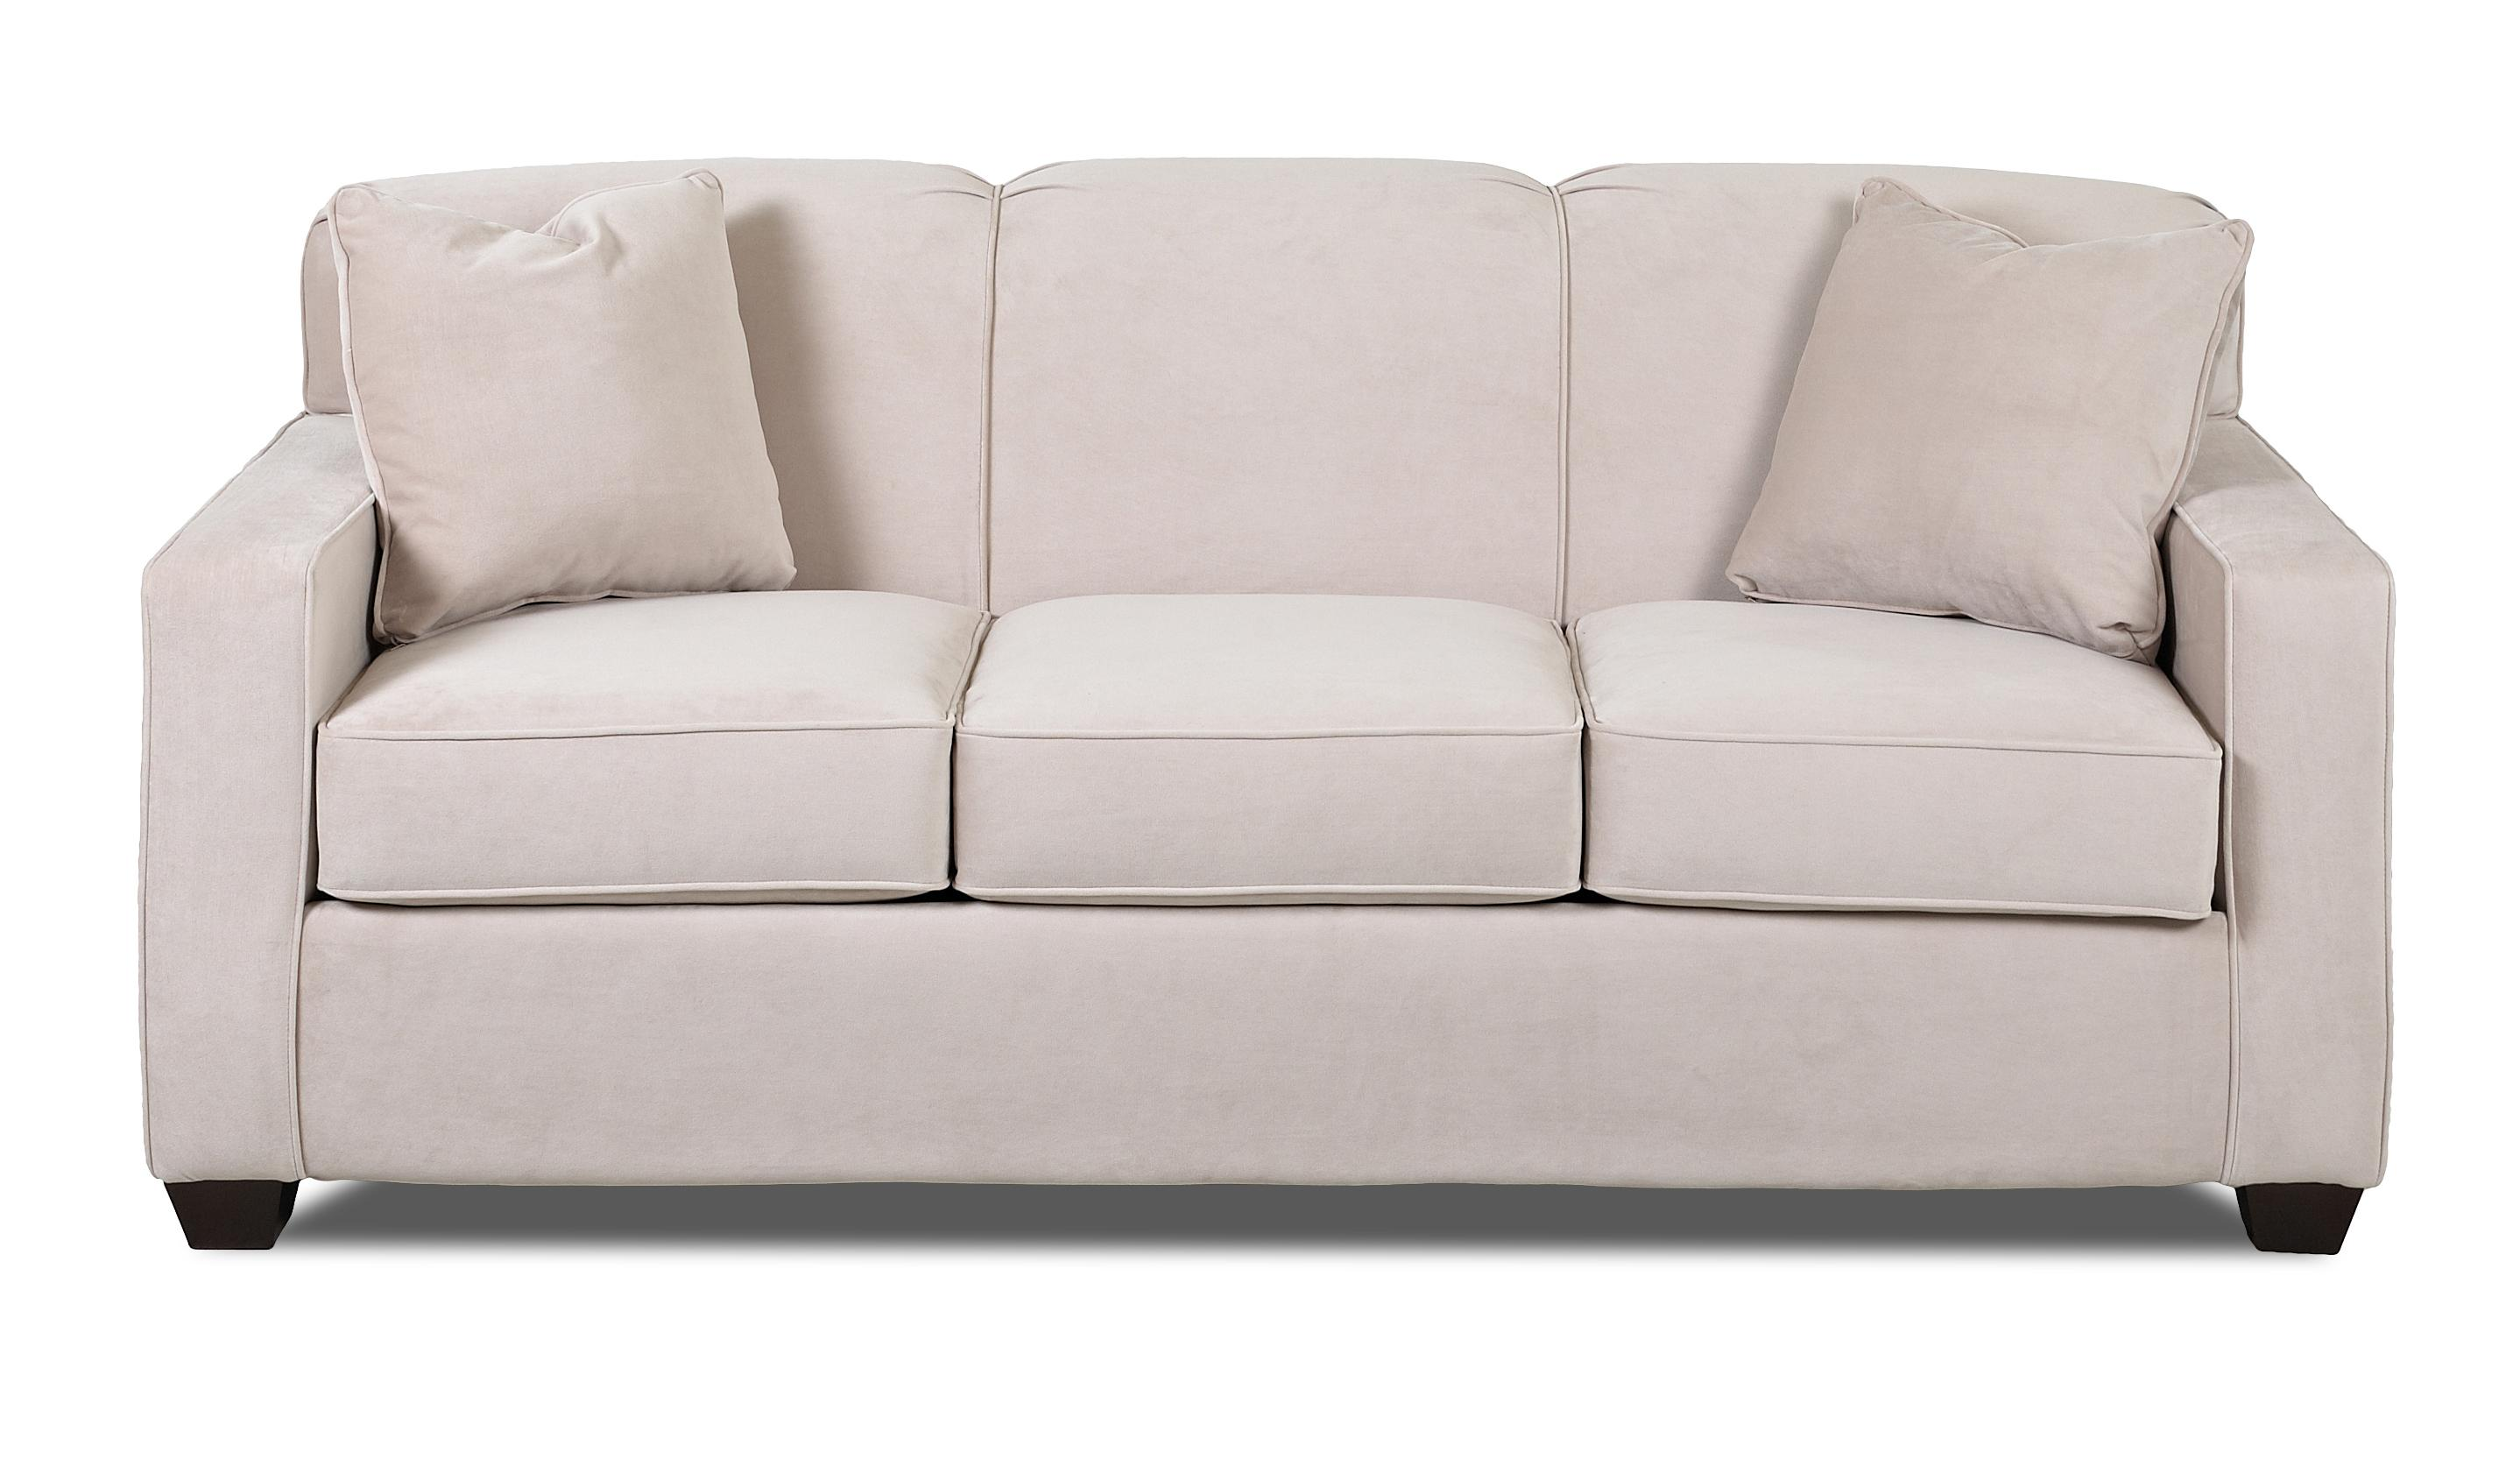 Contemporary Sofa With Tight Back And Track Arms By